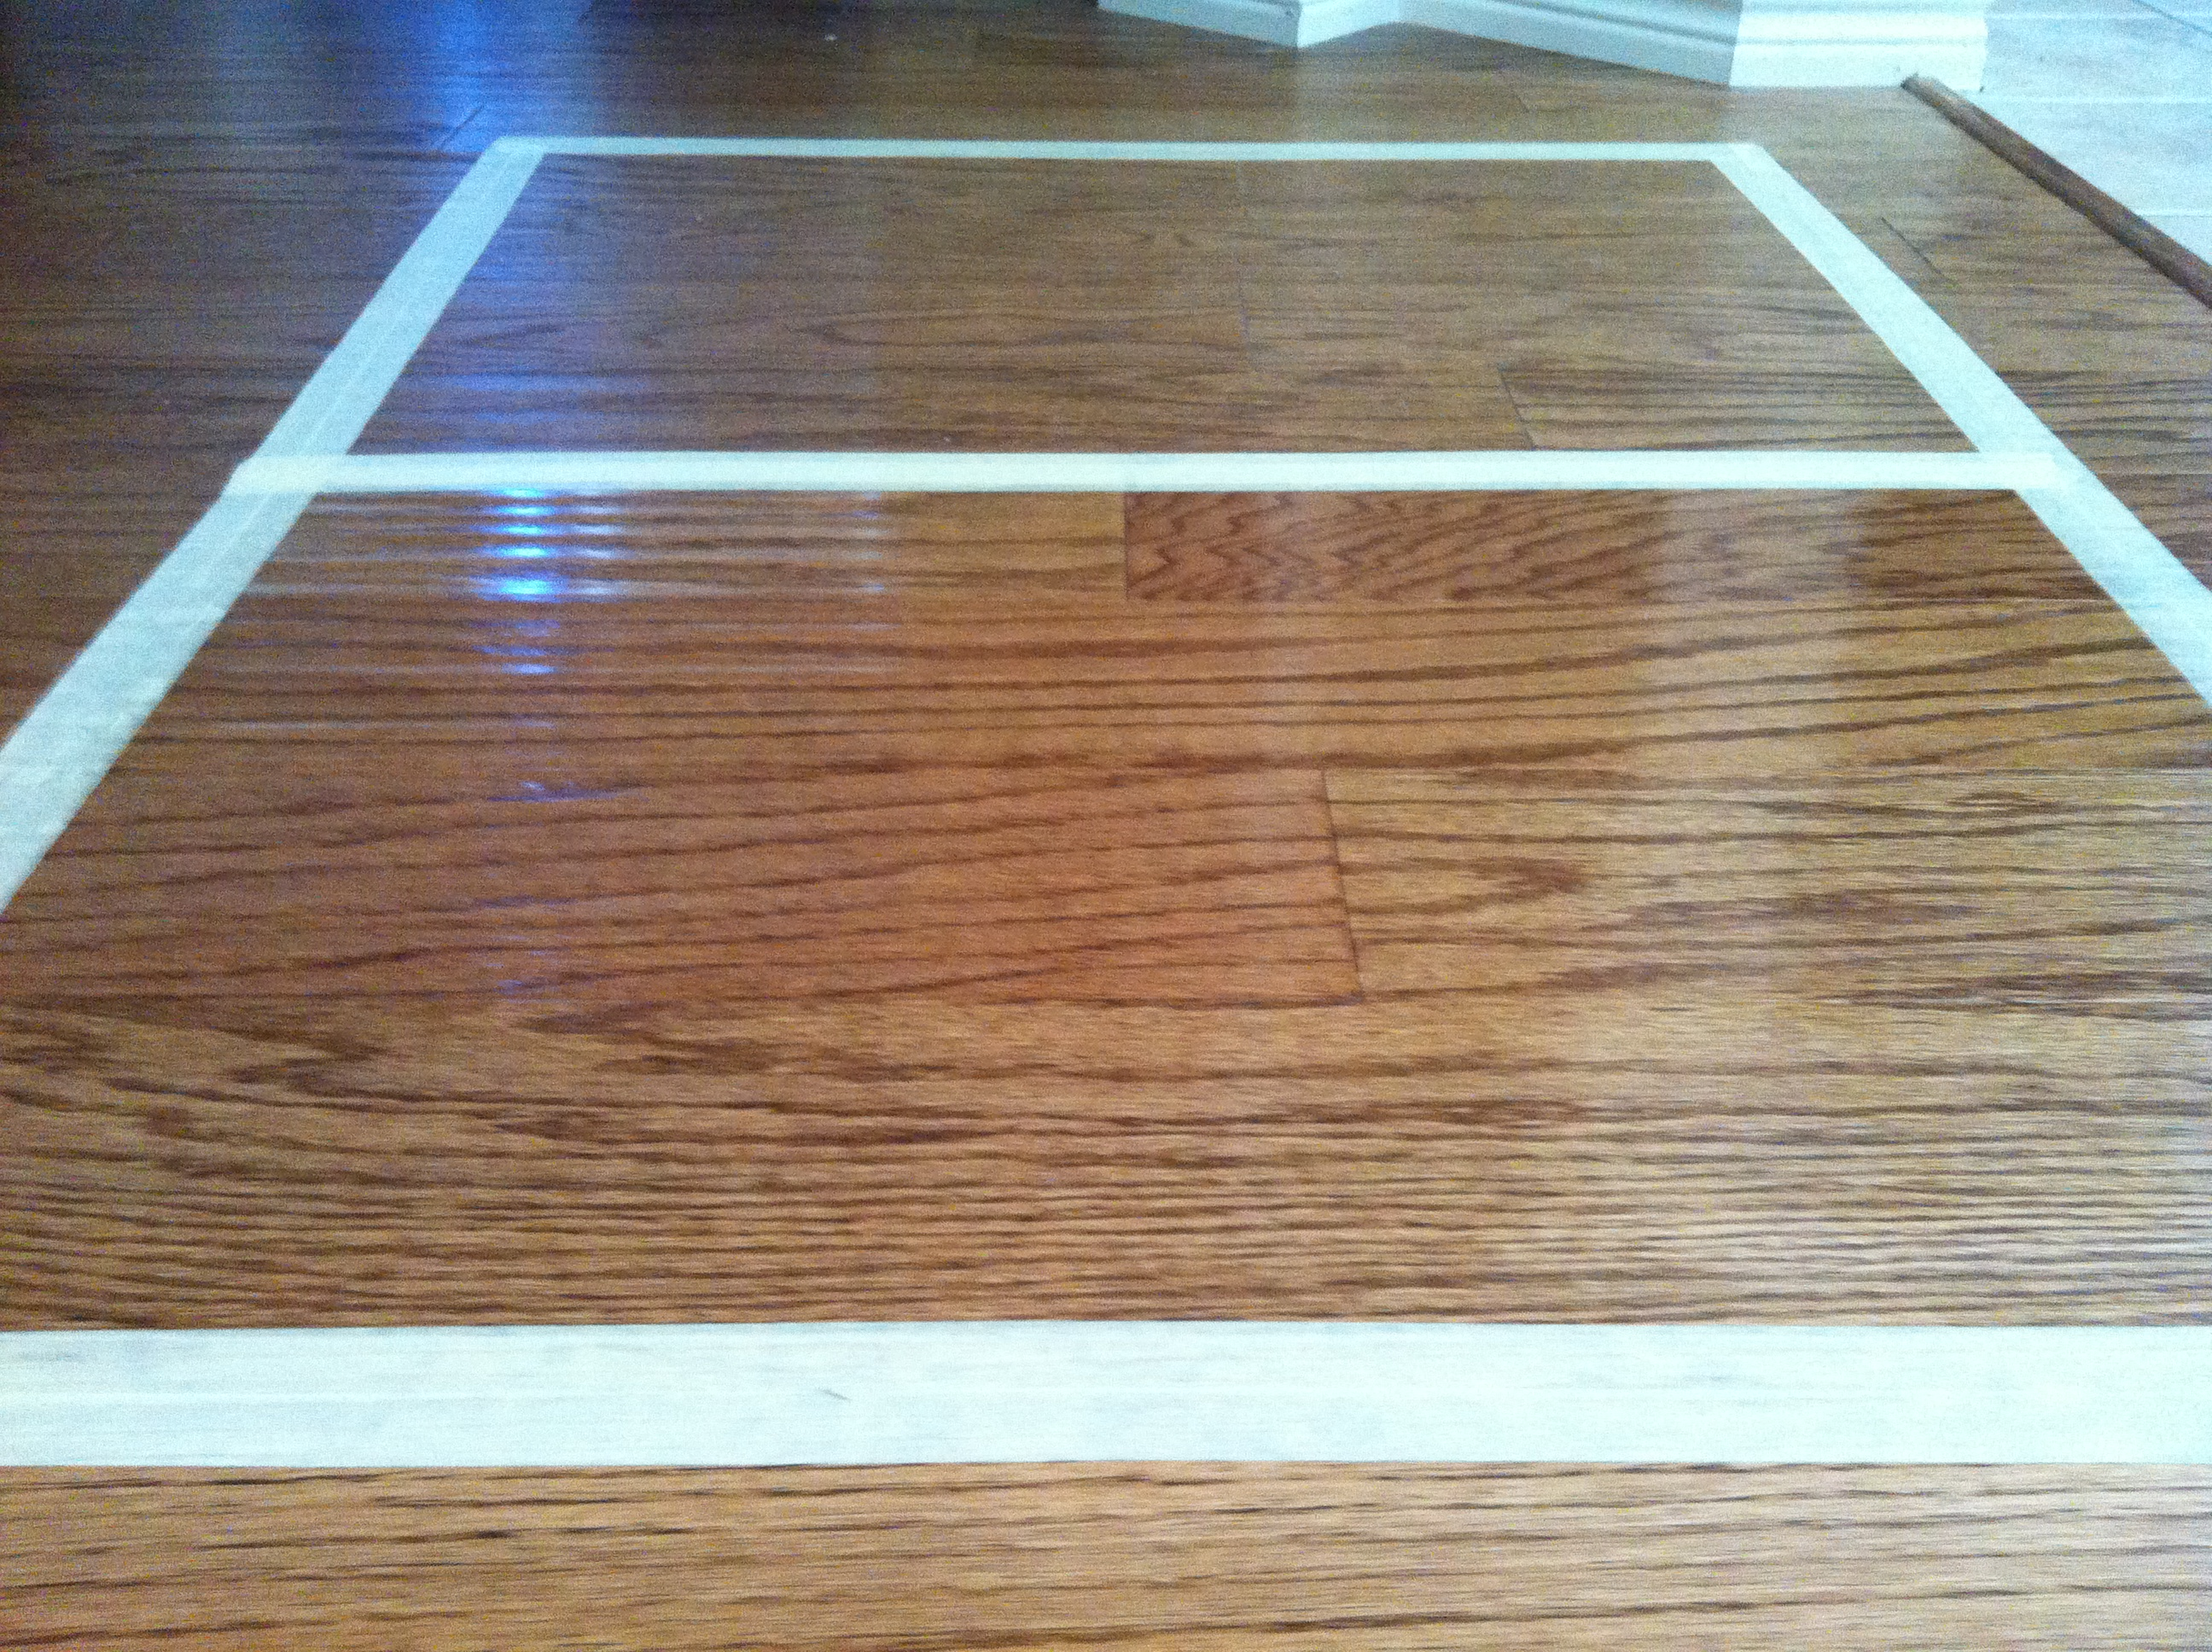 Rejuvenate hardwood floor cleaner reviews carpet review for Hardwood floors dull after cleaning